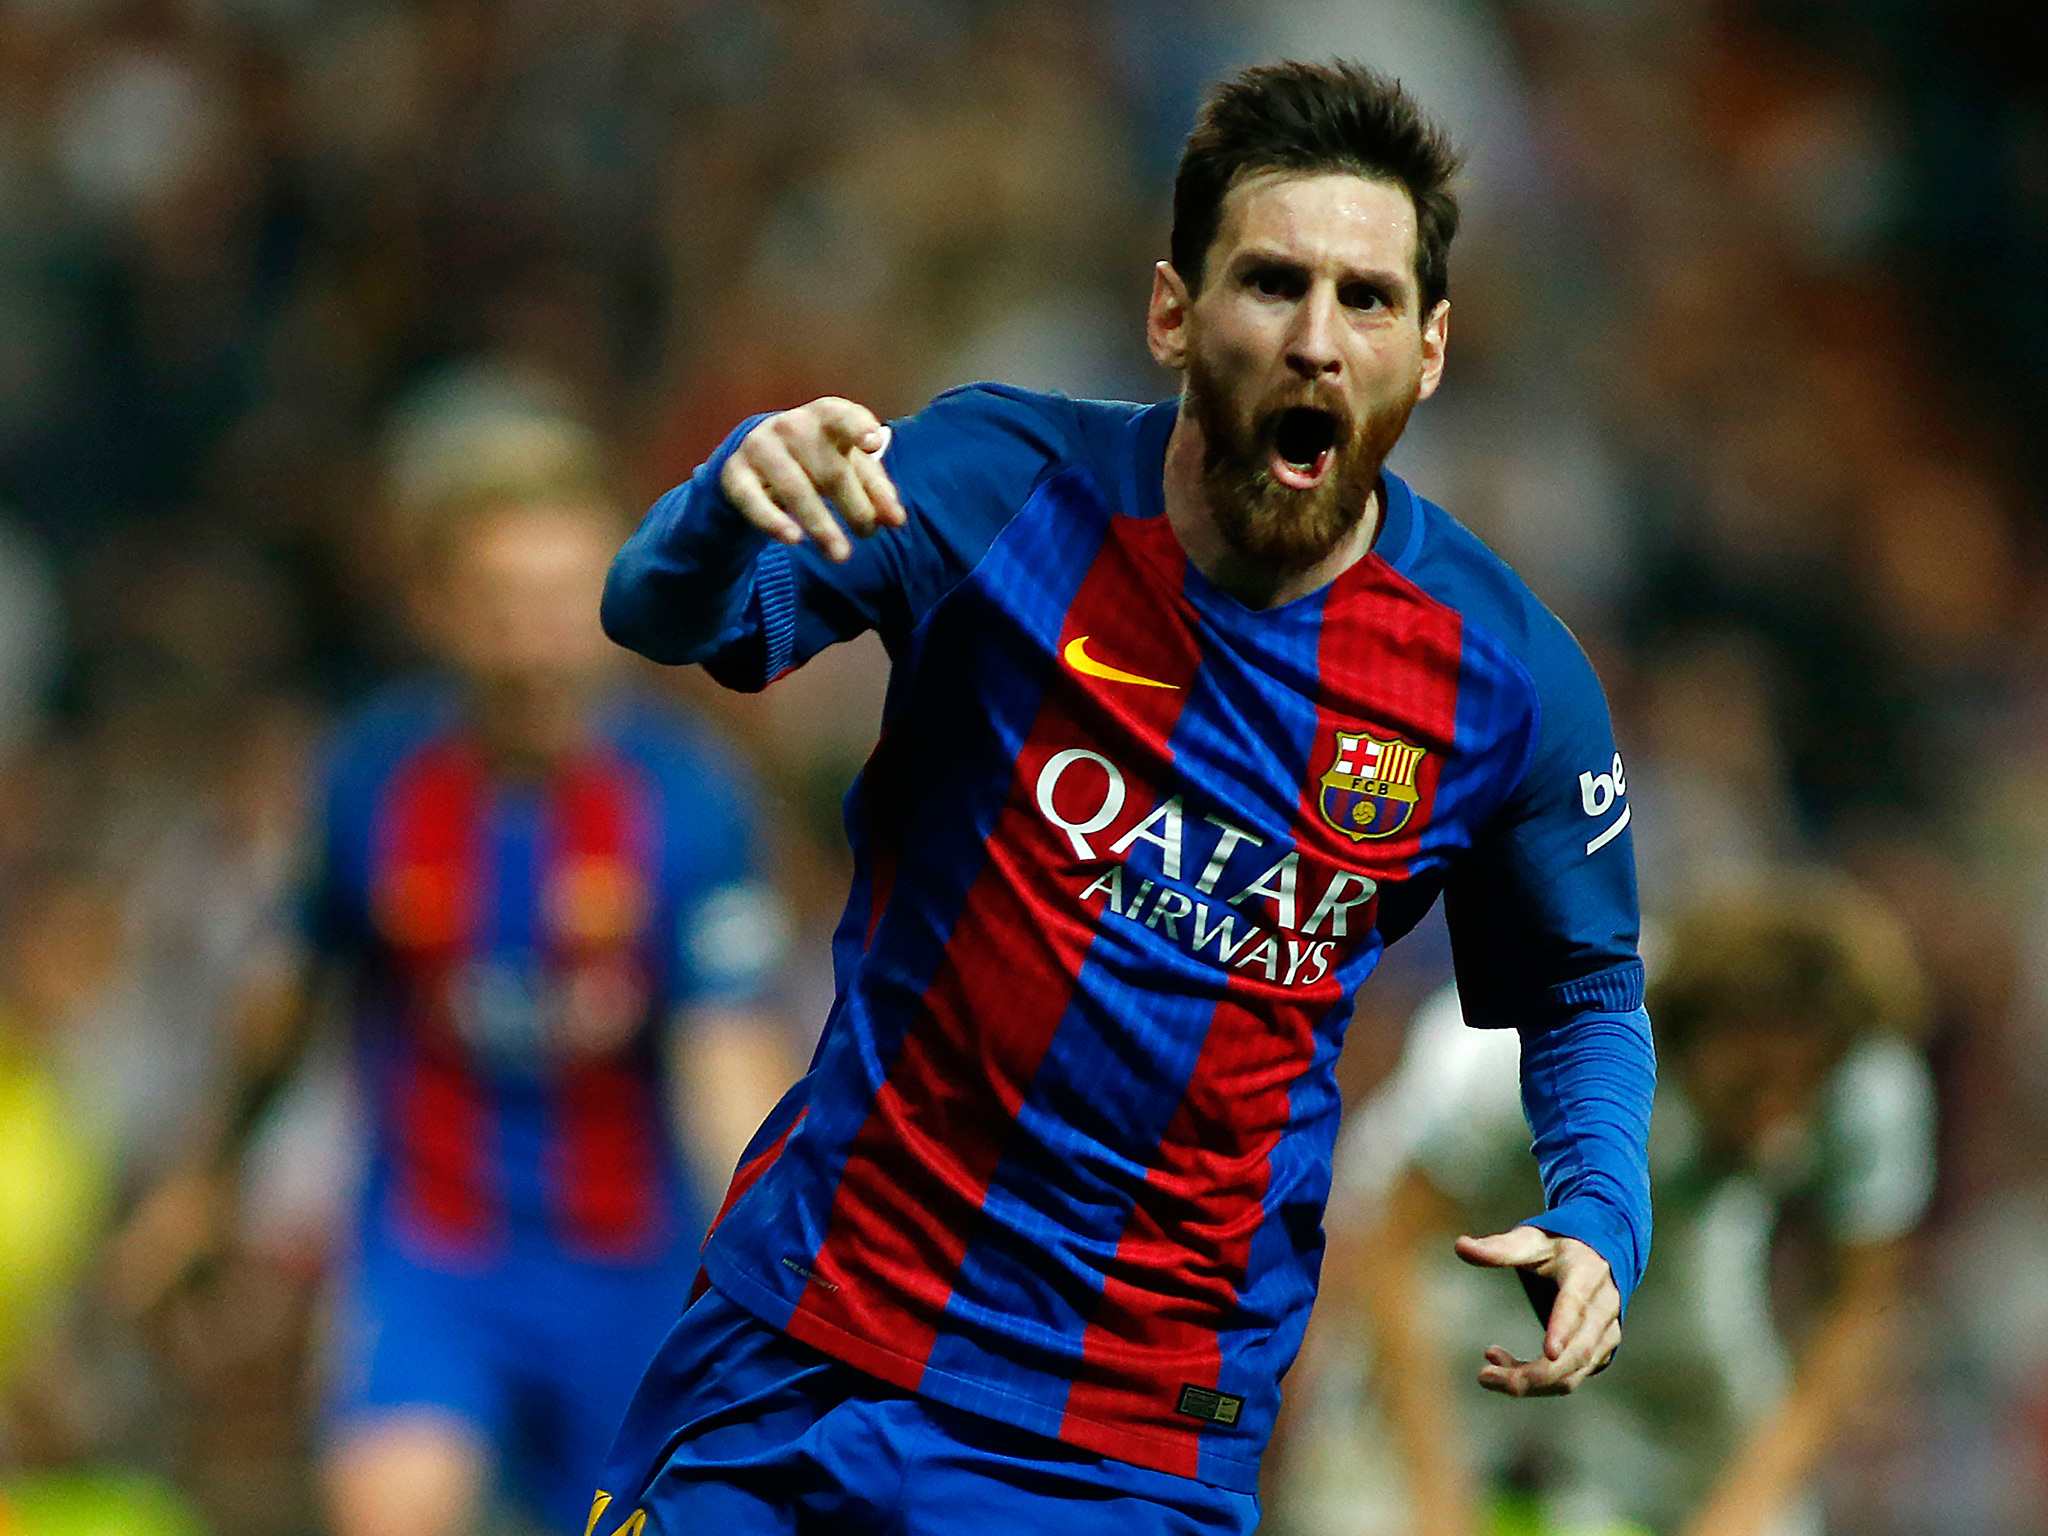 Messi wallpapers HD, Images, Backgrounds